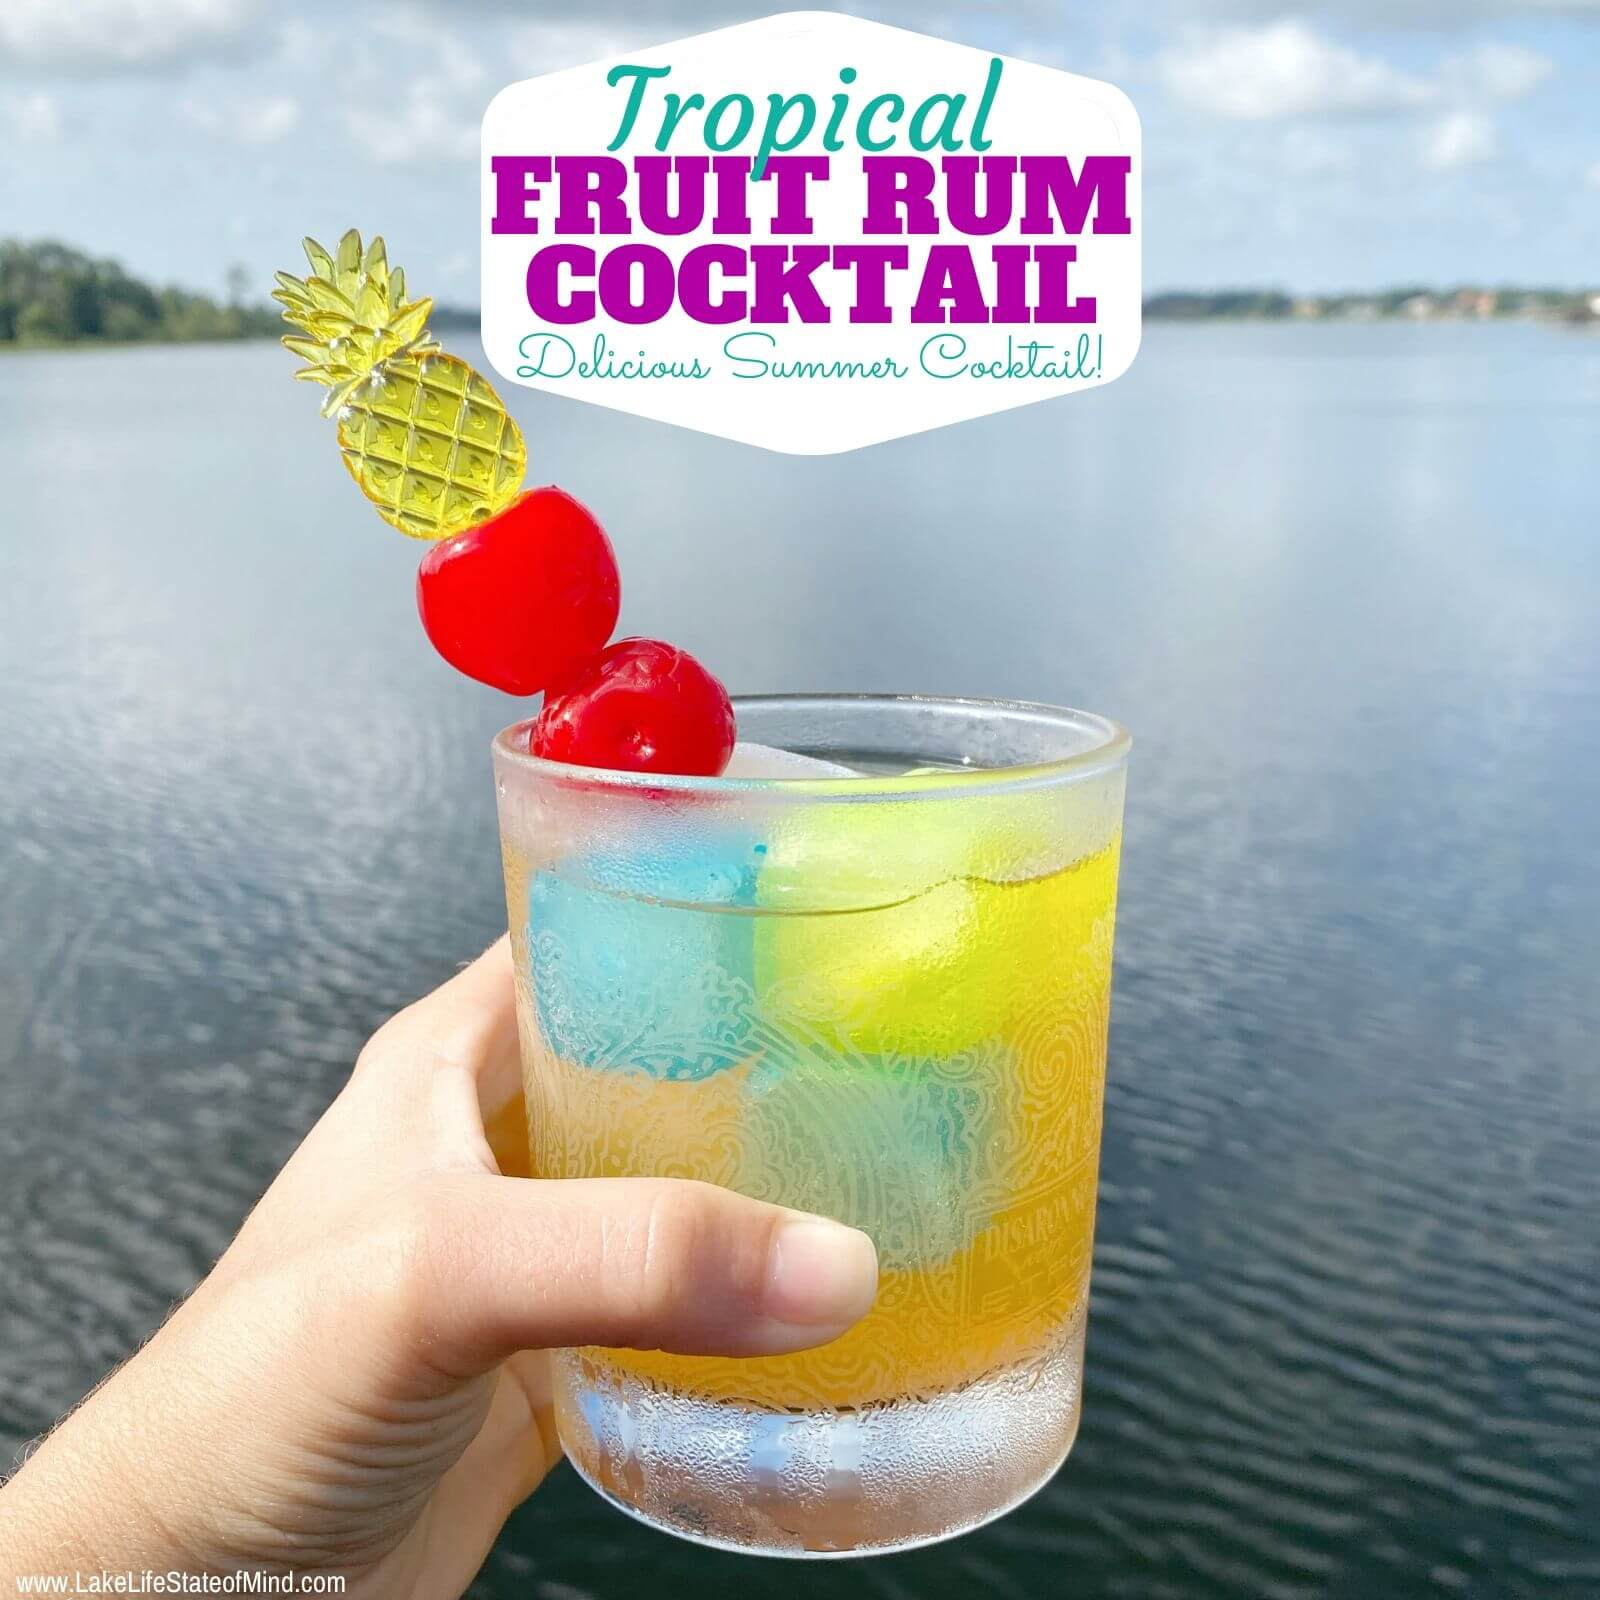 Cruzan Tropical Fruit Rum Cocktail